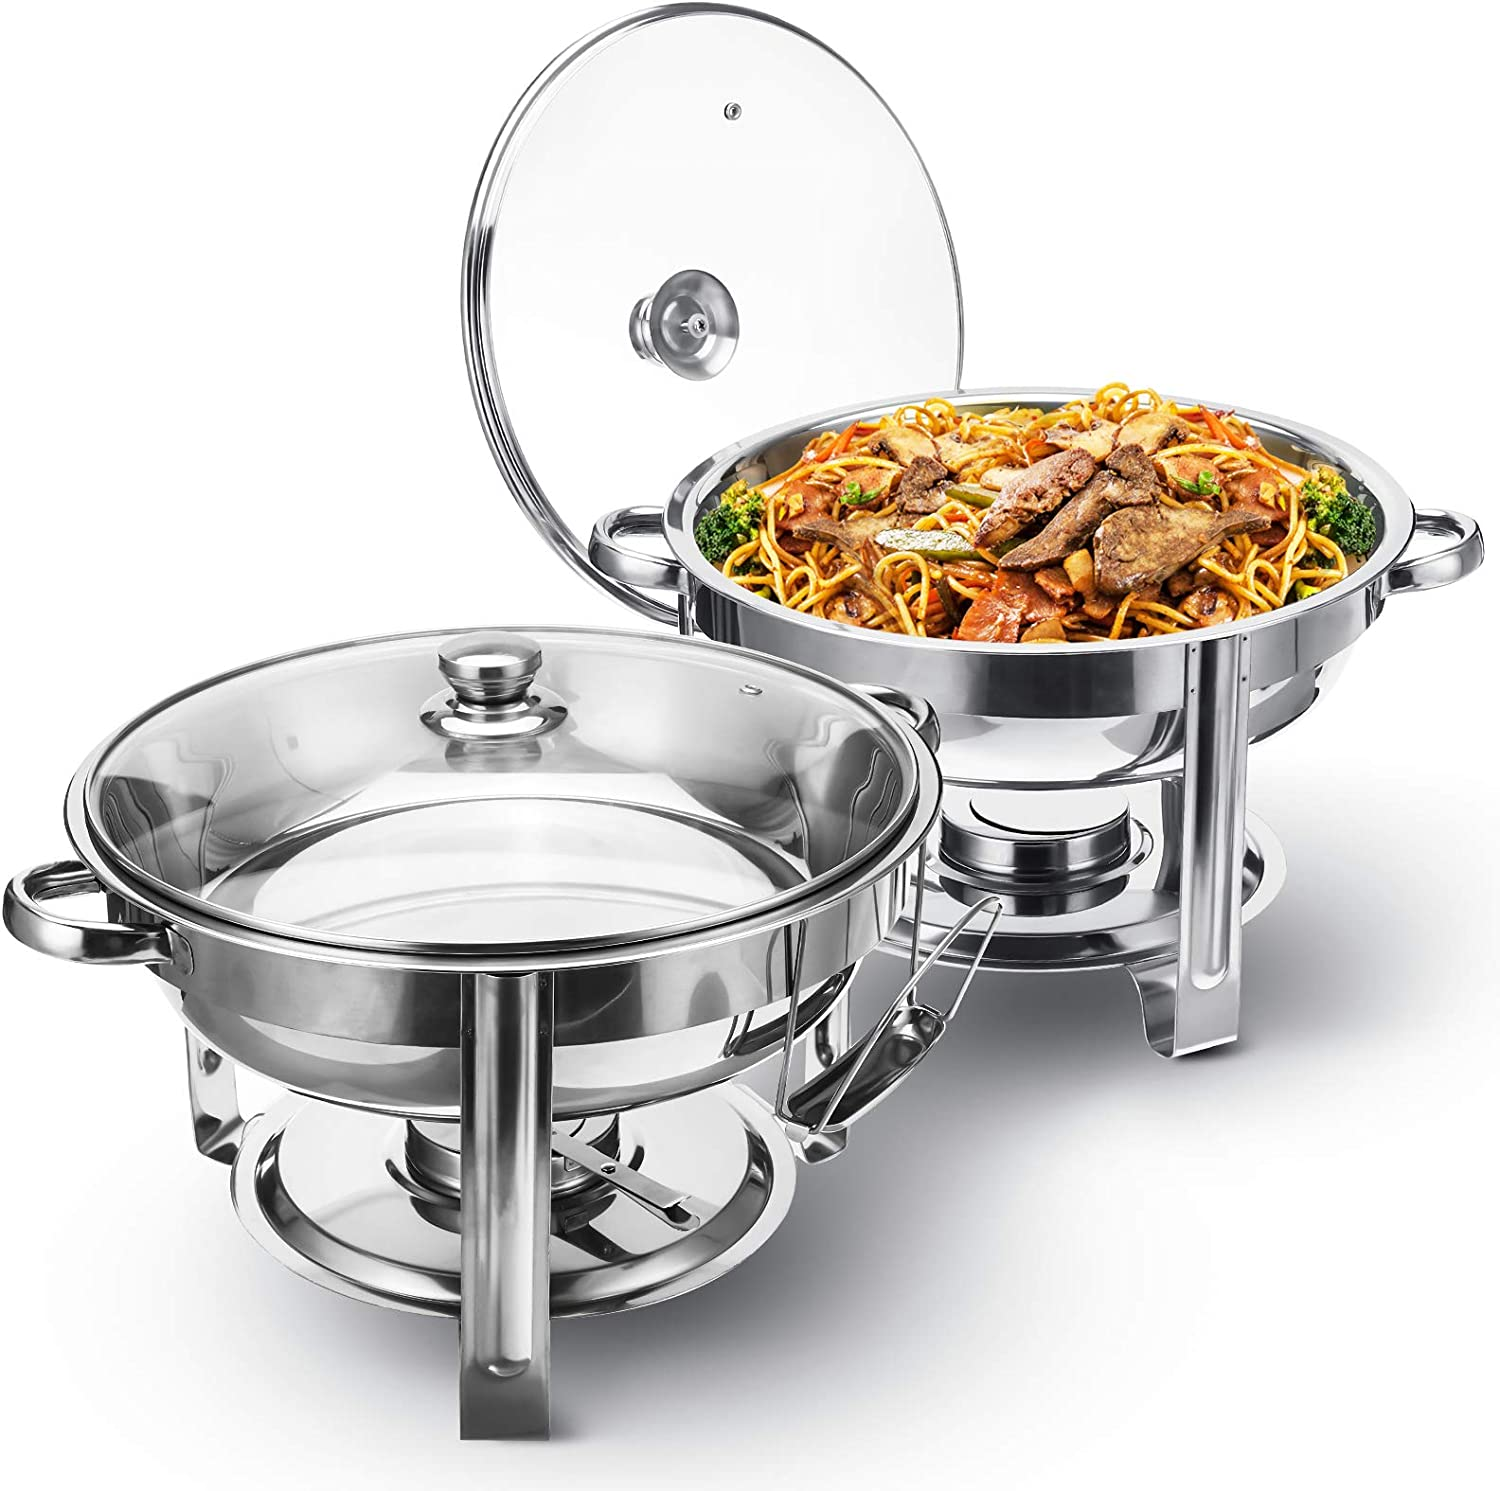 TOOCA Chafing Dish Buffet Set, 2Pack Round Chafers and Buffet Warmers Sets with Glass Lid & Lid Holder Chafing Dishes Stainless Steel Catering Food Warmers For Parties Events Wedding,4-Quart Capacity